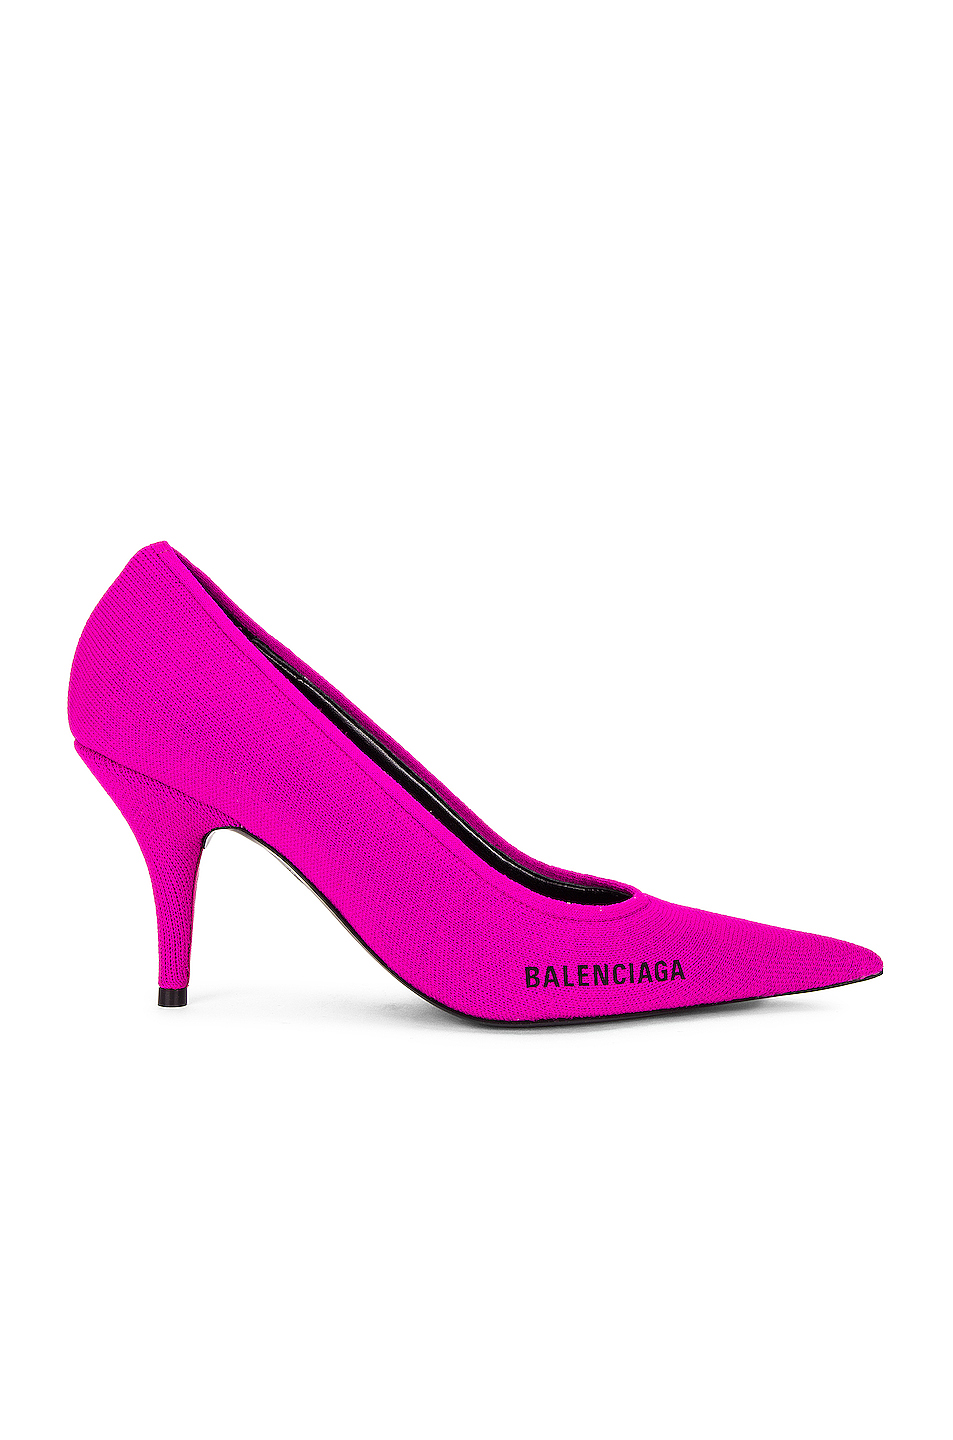 Image 1 of Balenciaga Knife Knit Pumps in Fuxia & Black